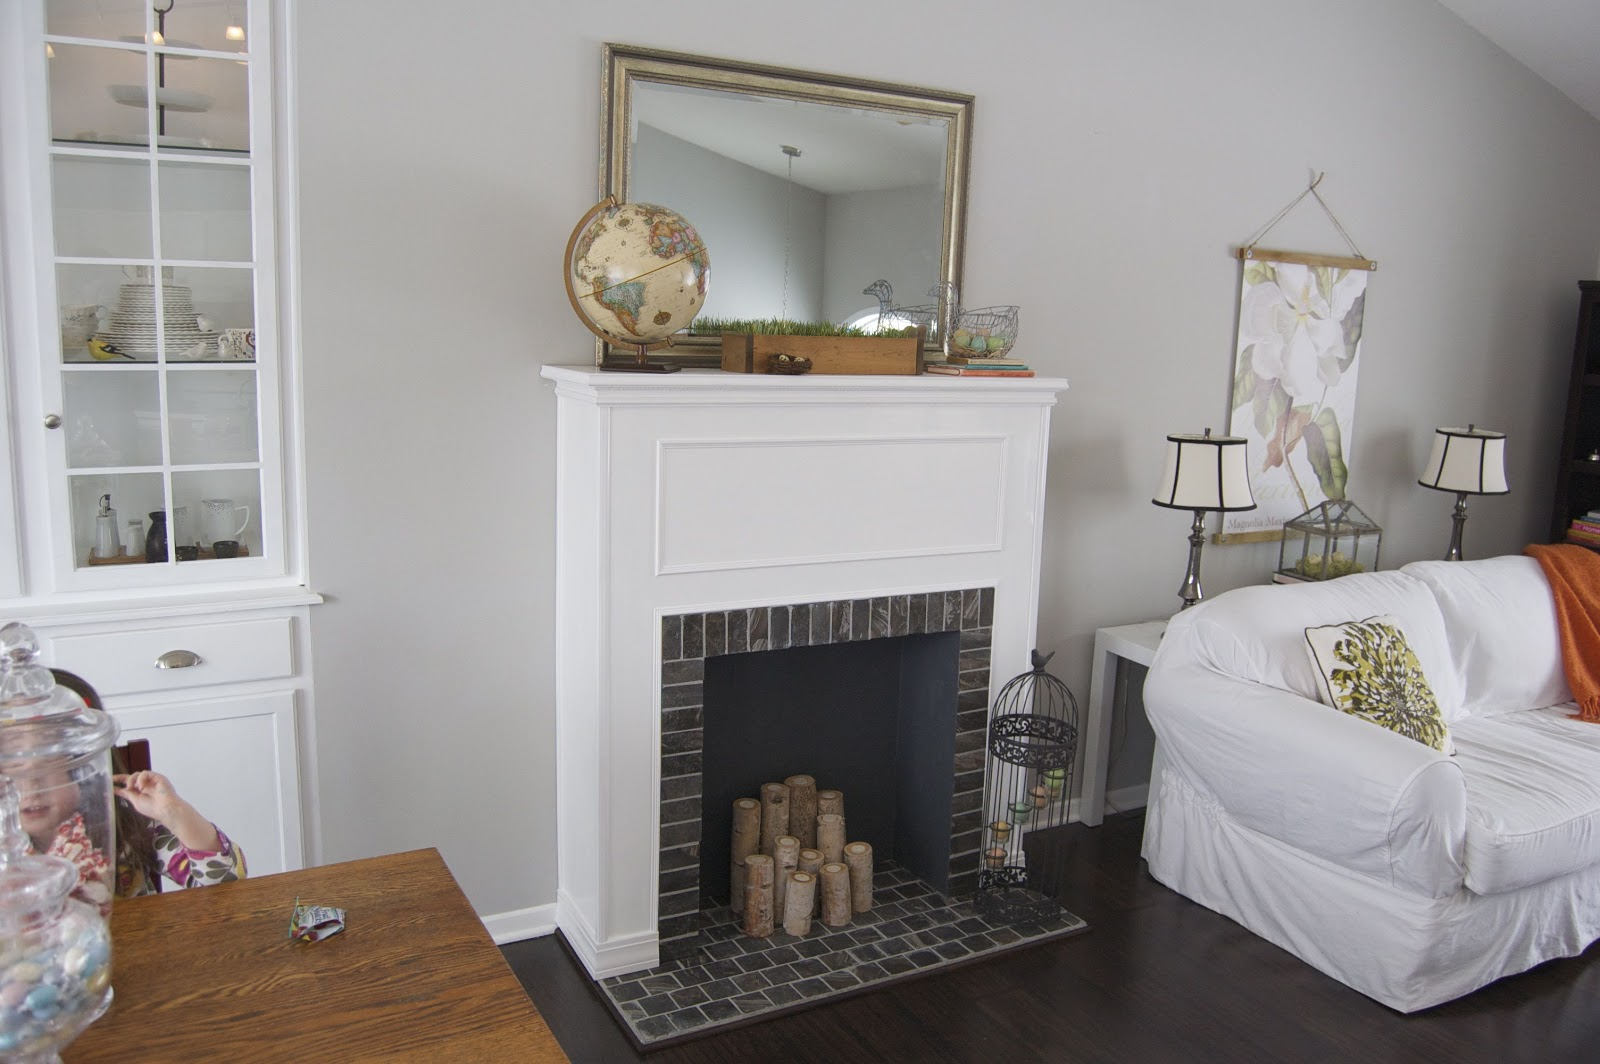 How To Build a Faux Fireplace